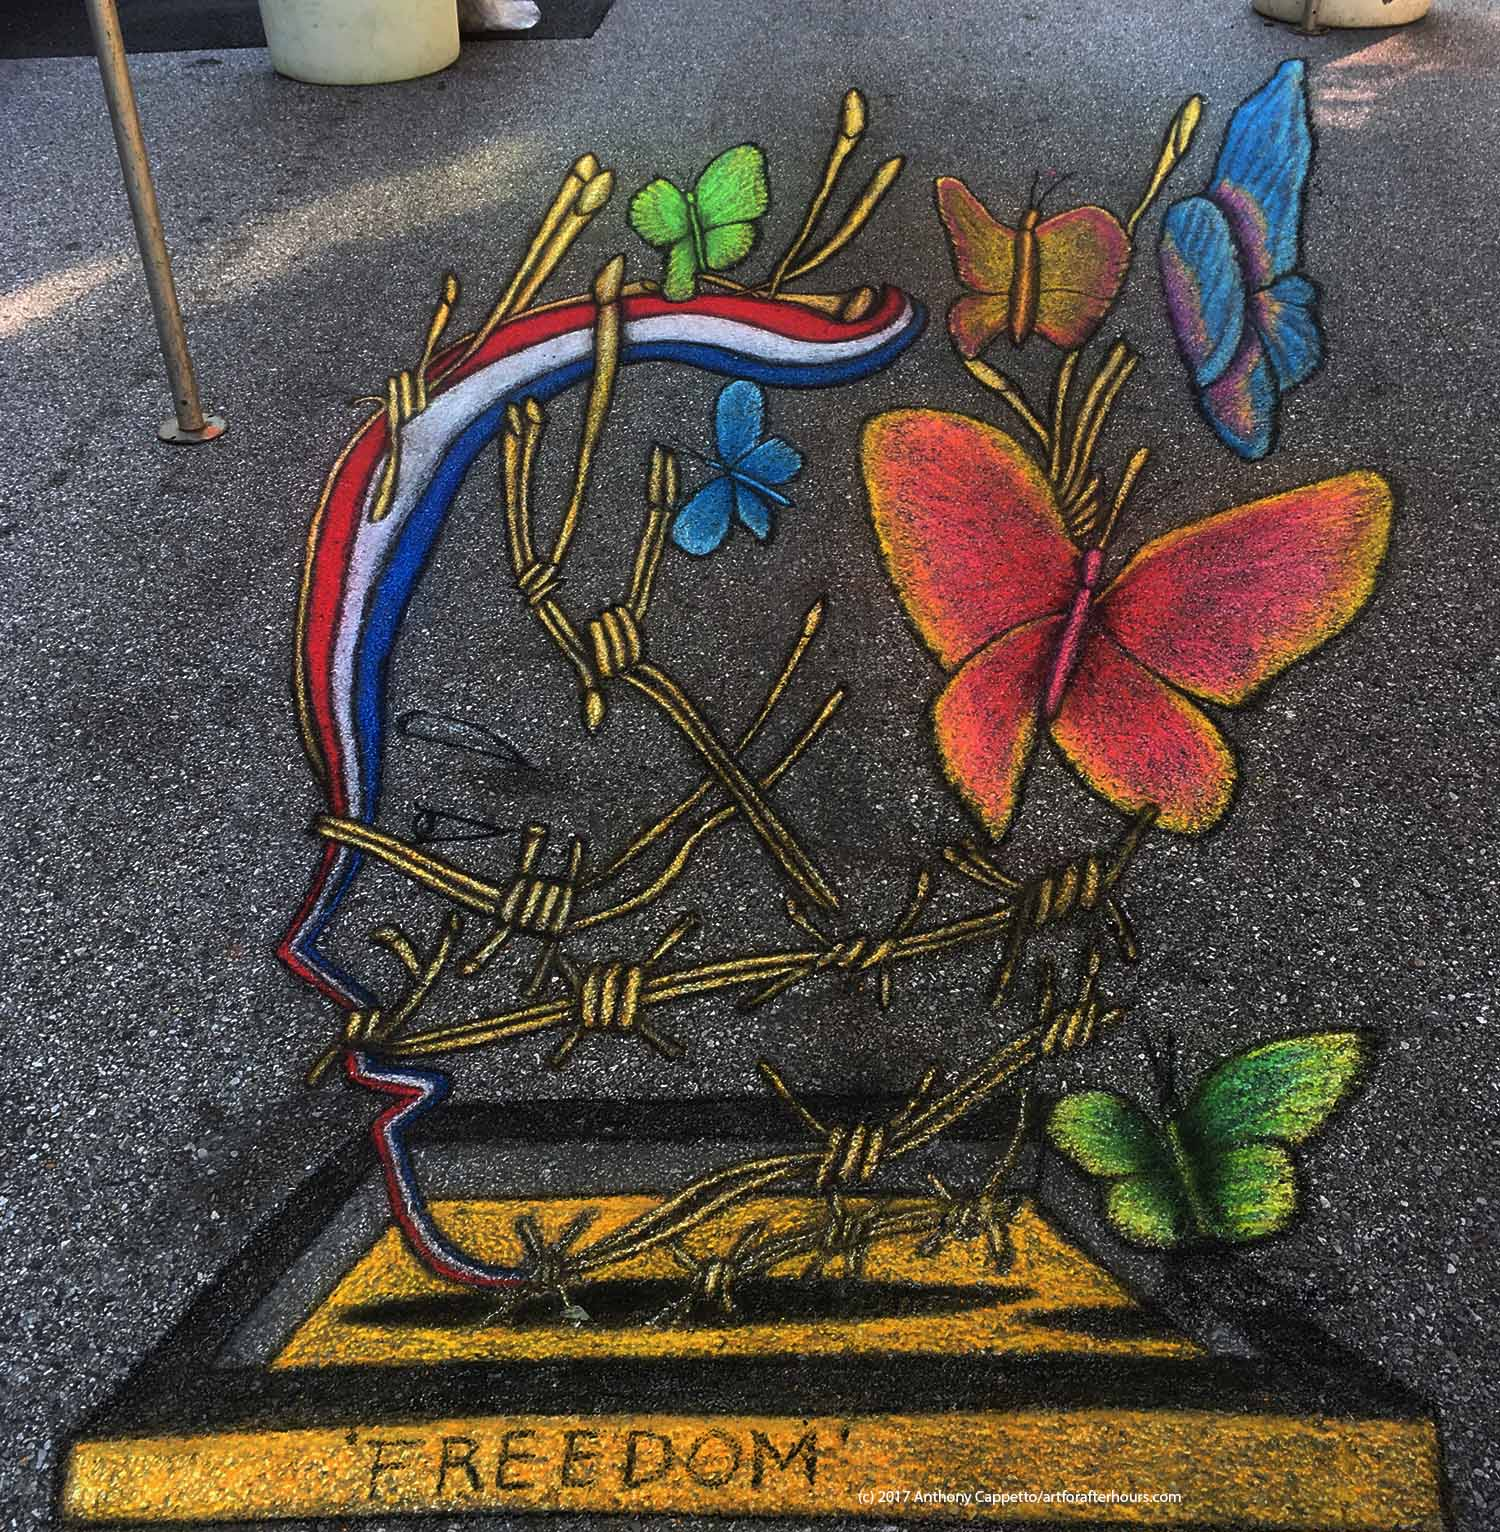 'Freedom': 8 feet wide by 16 feet deep. Chalk on pavement at the Little Italy Madonnari Festival in Baltimore, Maryland.  Artists: Anthony Cappetto (lead) with Wendy Stum.